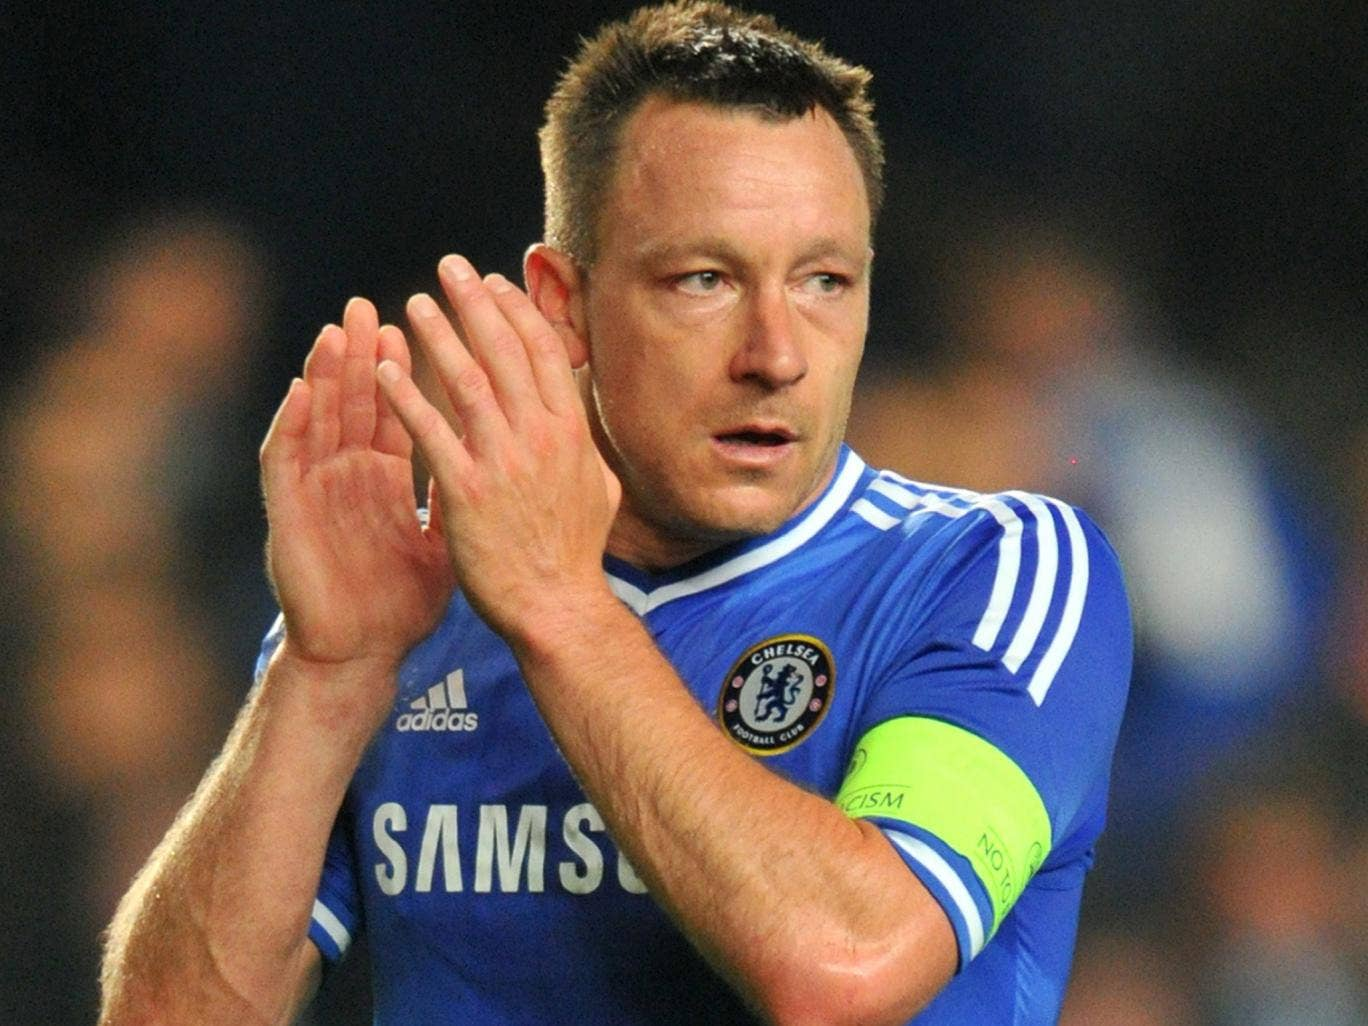 John Terry pictured after Chelsea's defeat to Atletico Madrid